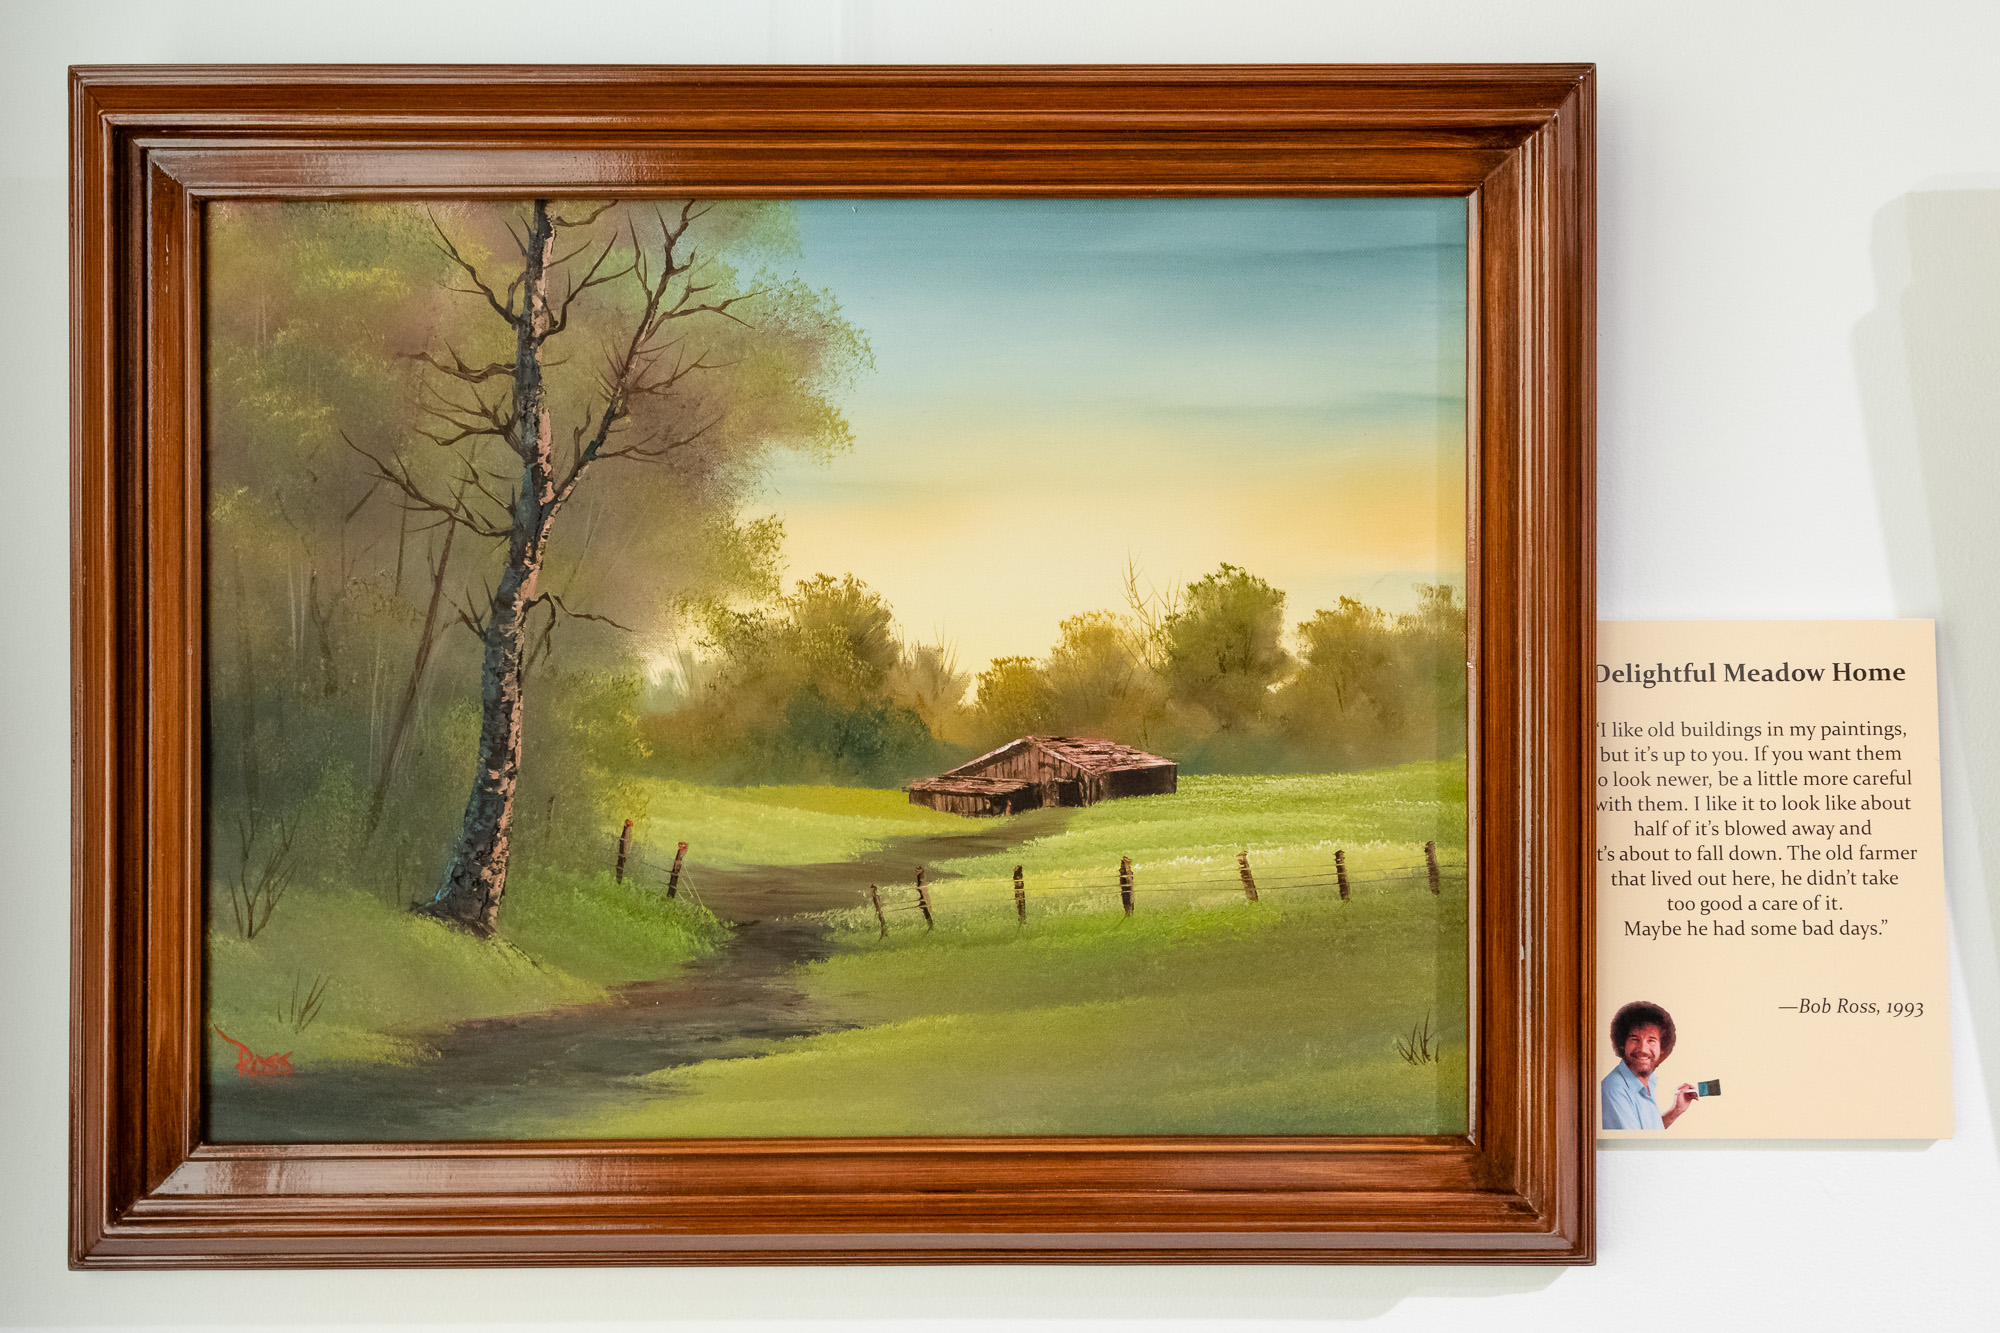 Delightful Meadow Home , an original oil painting by Bob Ross, exhibited at Franklin Park Arts Center